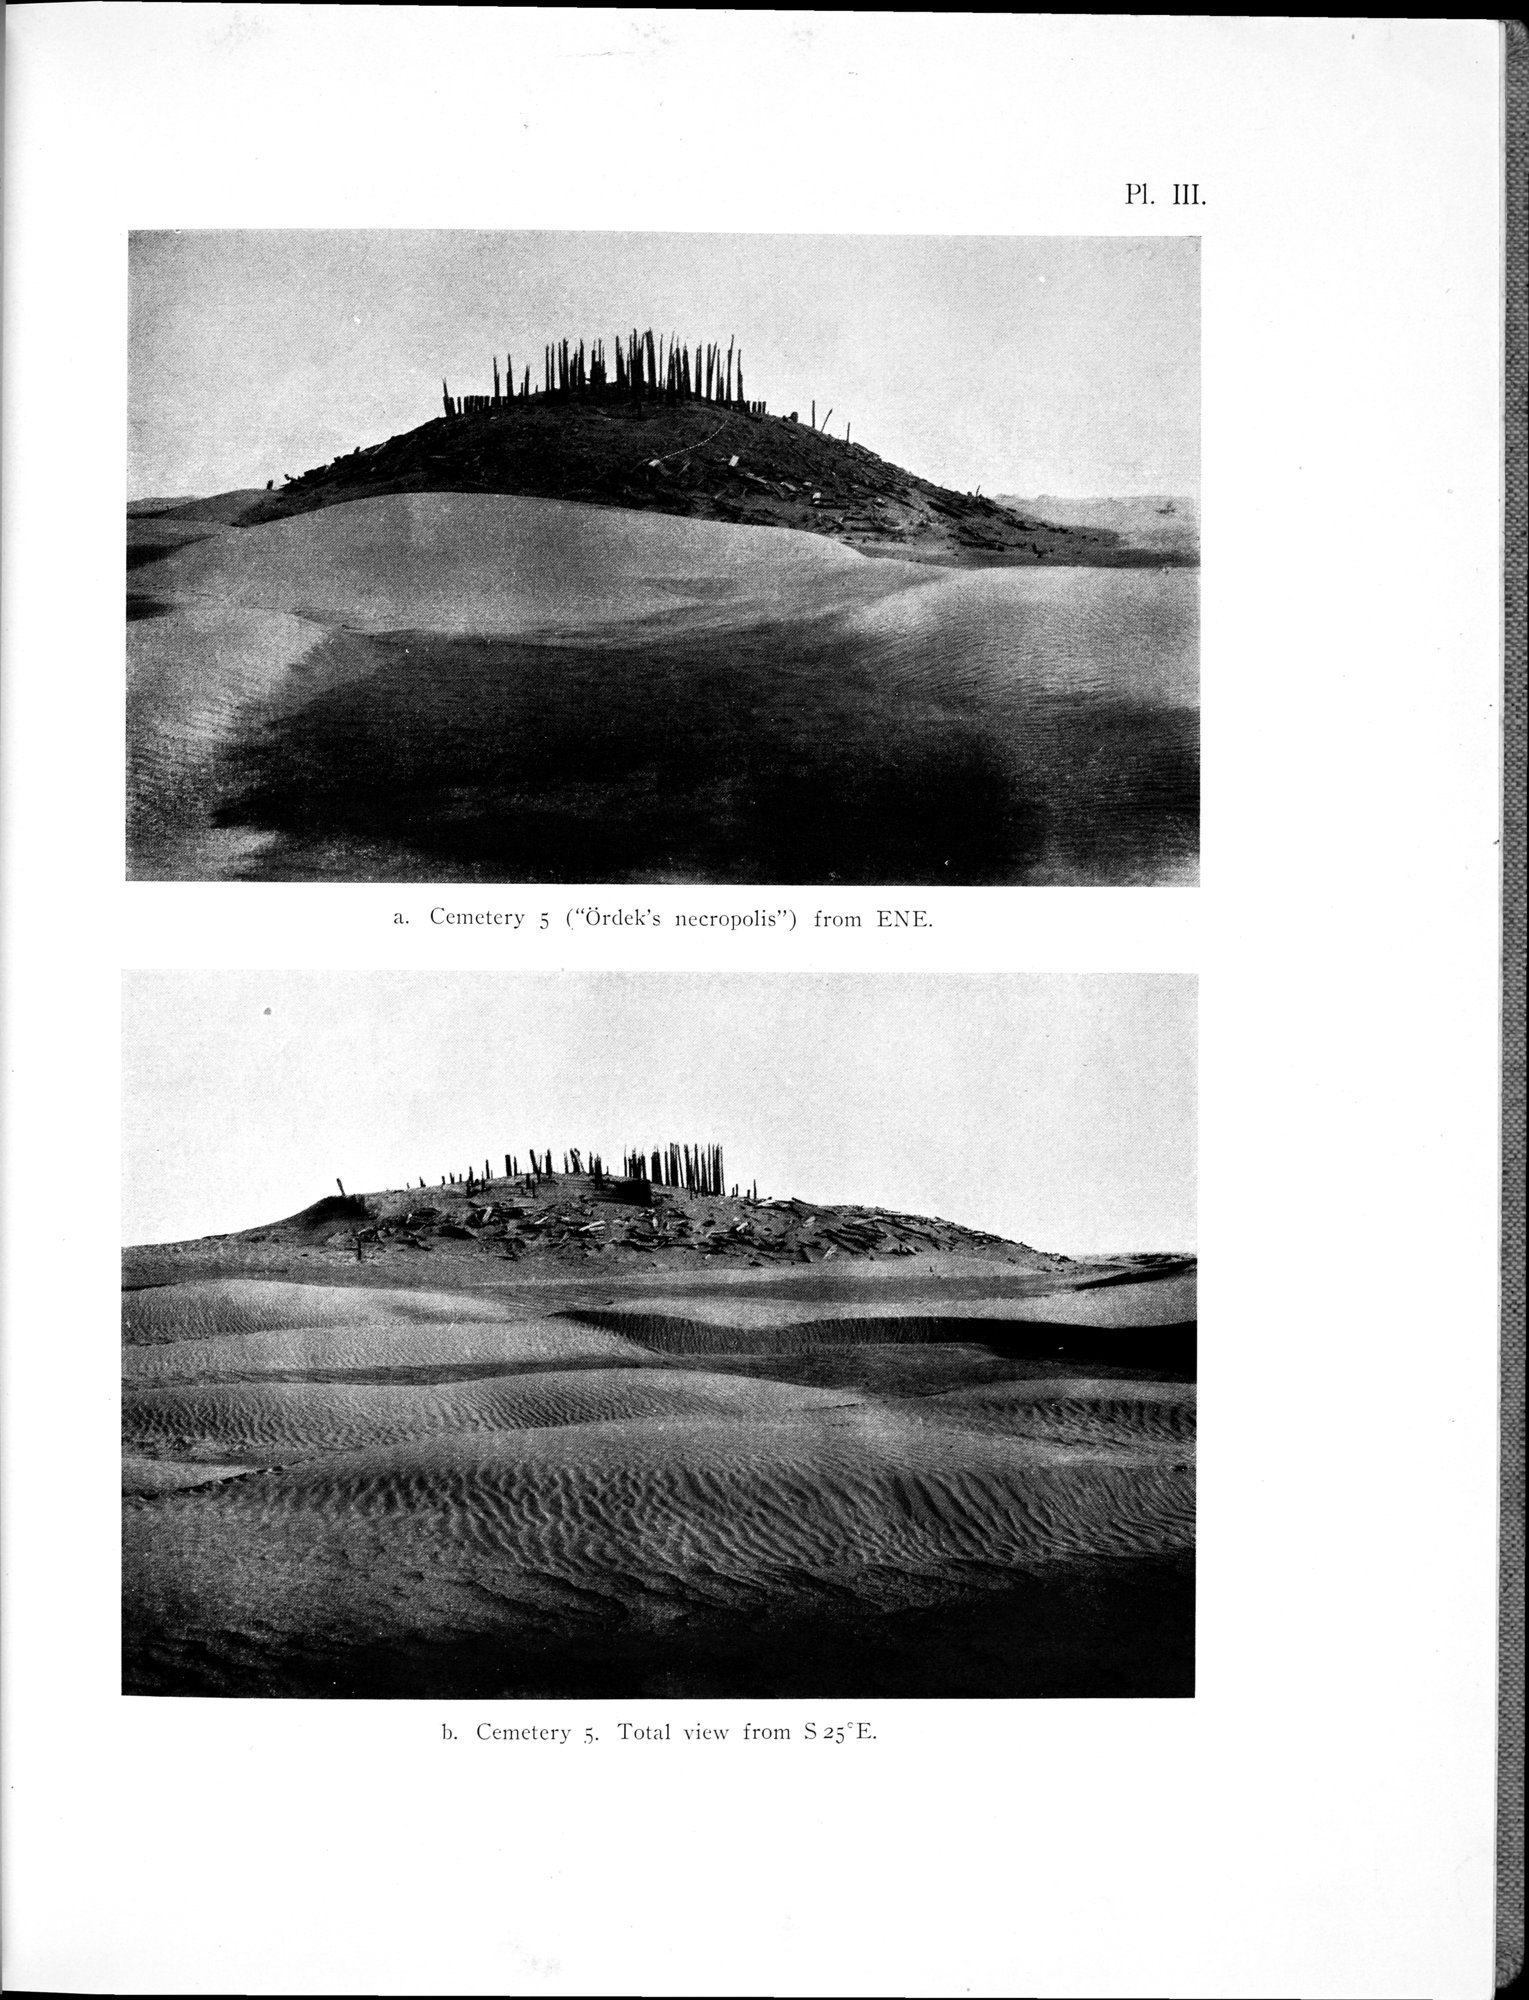 Archaeological Researches in Sinkiang : vol.1 / Page 57 (Grayscale High Resolution Image)